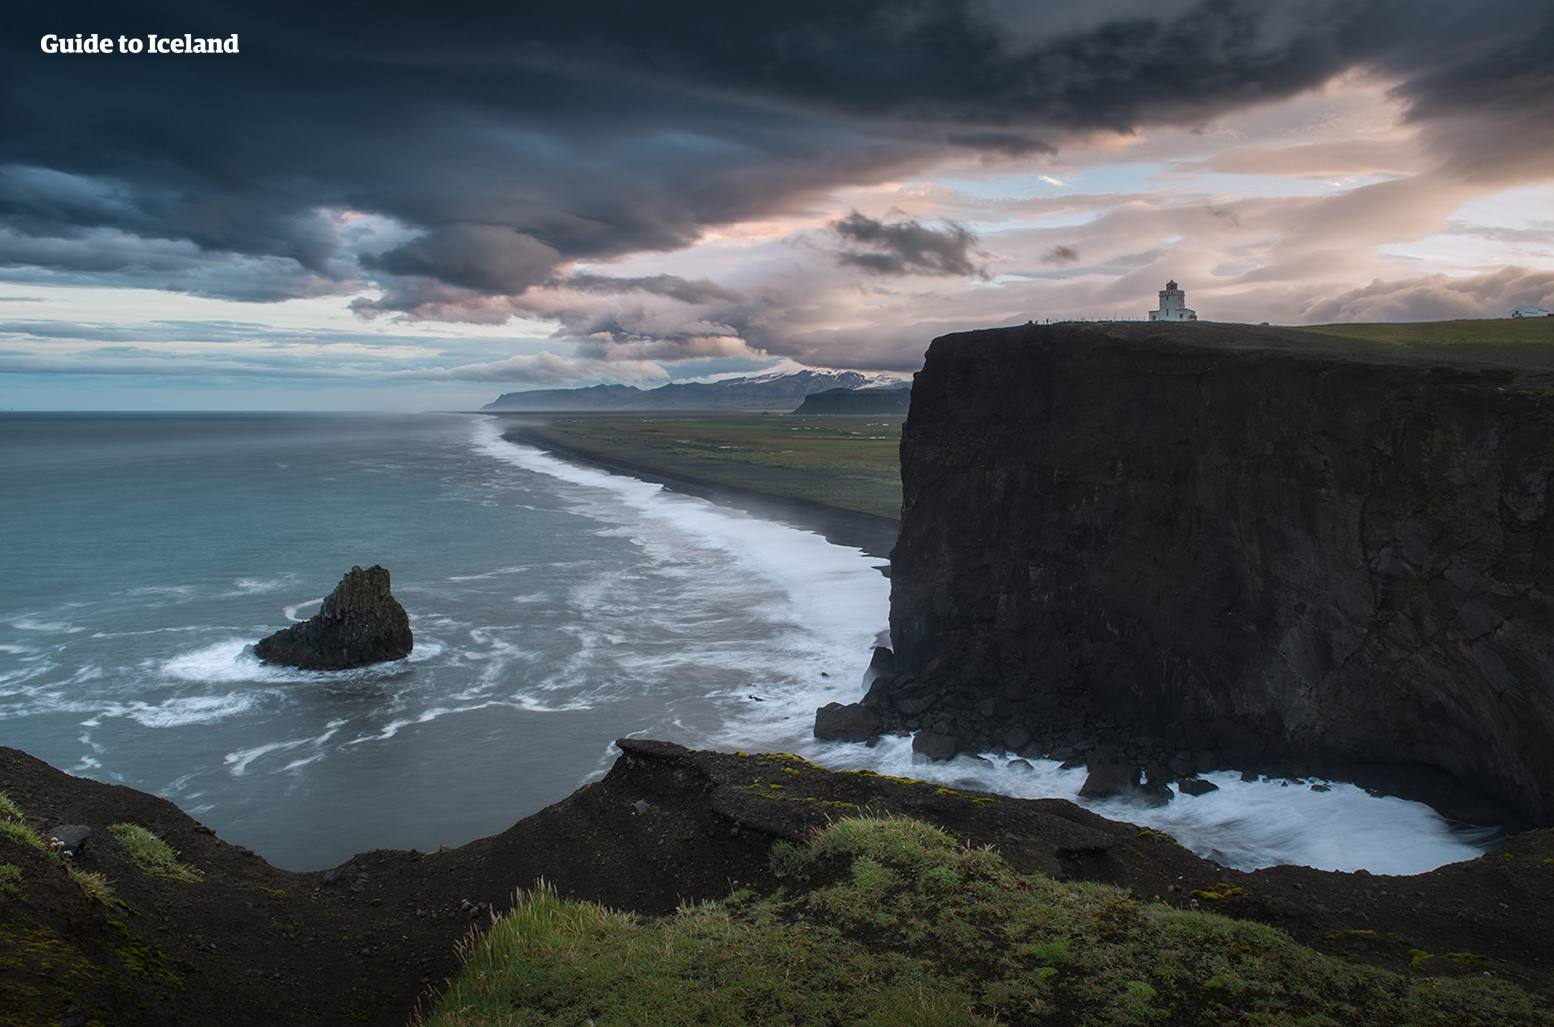 Adventurous 9 Day 4x4 Self Drive & Camping Trip of Iceland's Highlands - day 2